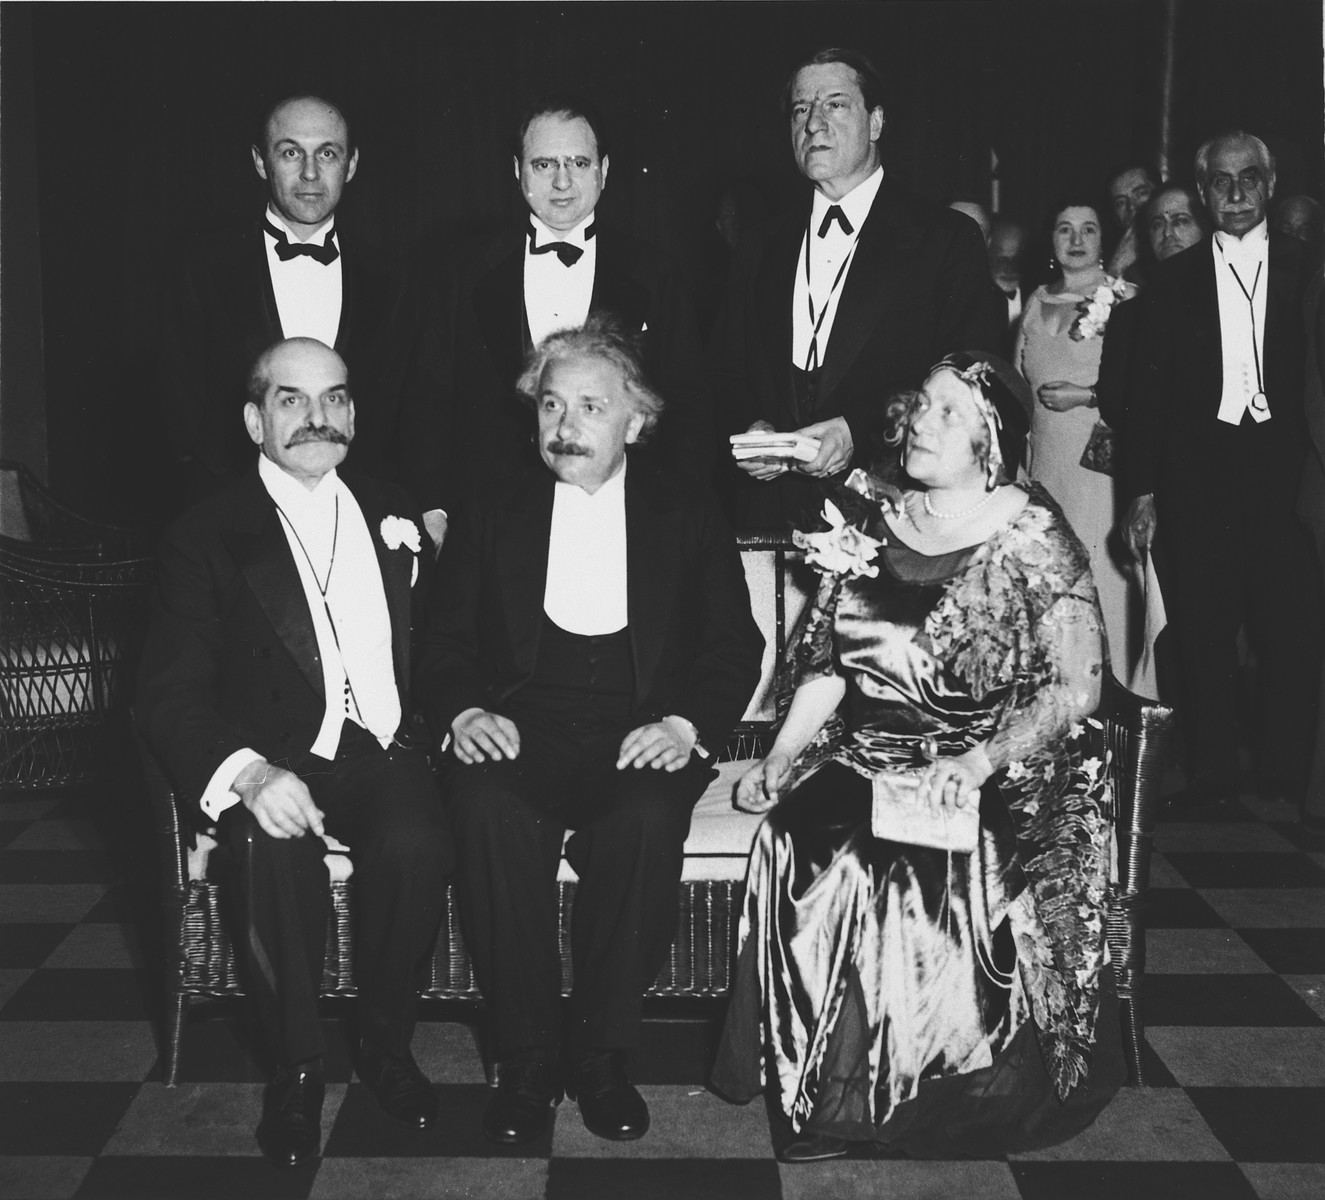 Group photograph of American Jewish leaders and recent German Jewish emigres to the United States.  Those pictured include Felix Warburg (seated, far left), Albert Einstein (seated center), Elsa Einstein (seated, right), Morris Rothenberg (standing, center) and Rabbi Stephen Wise (standing, far right).